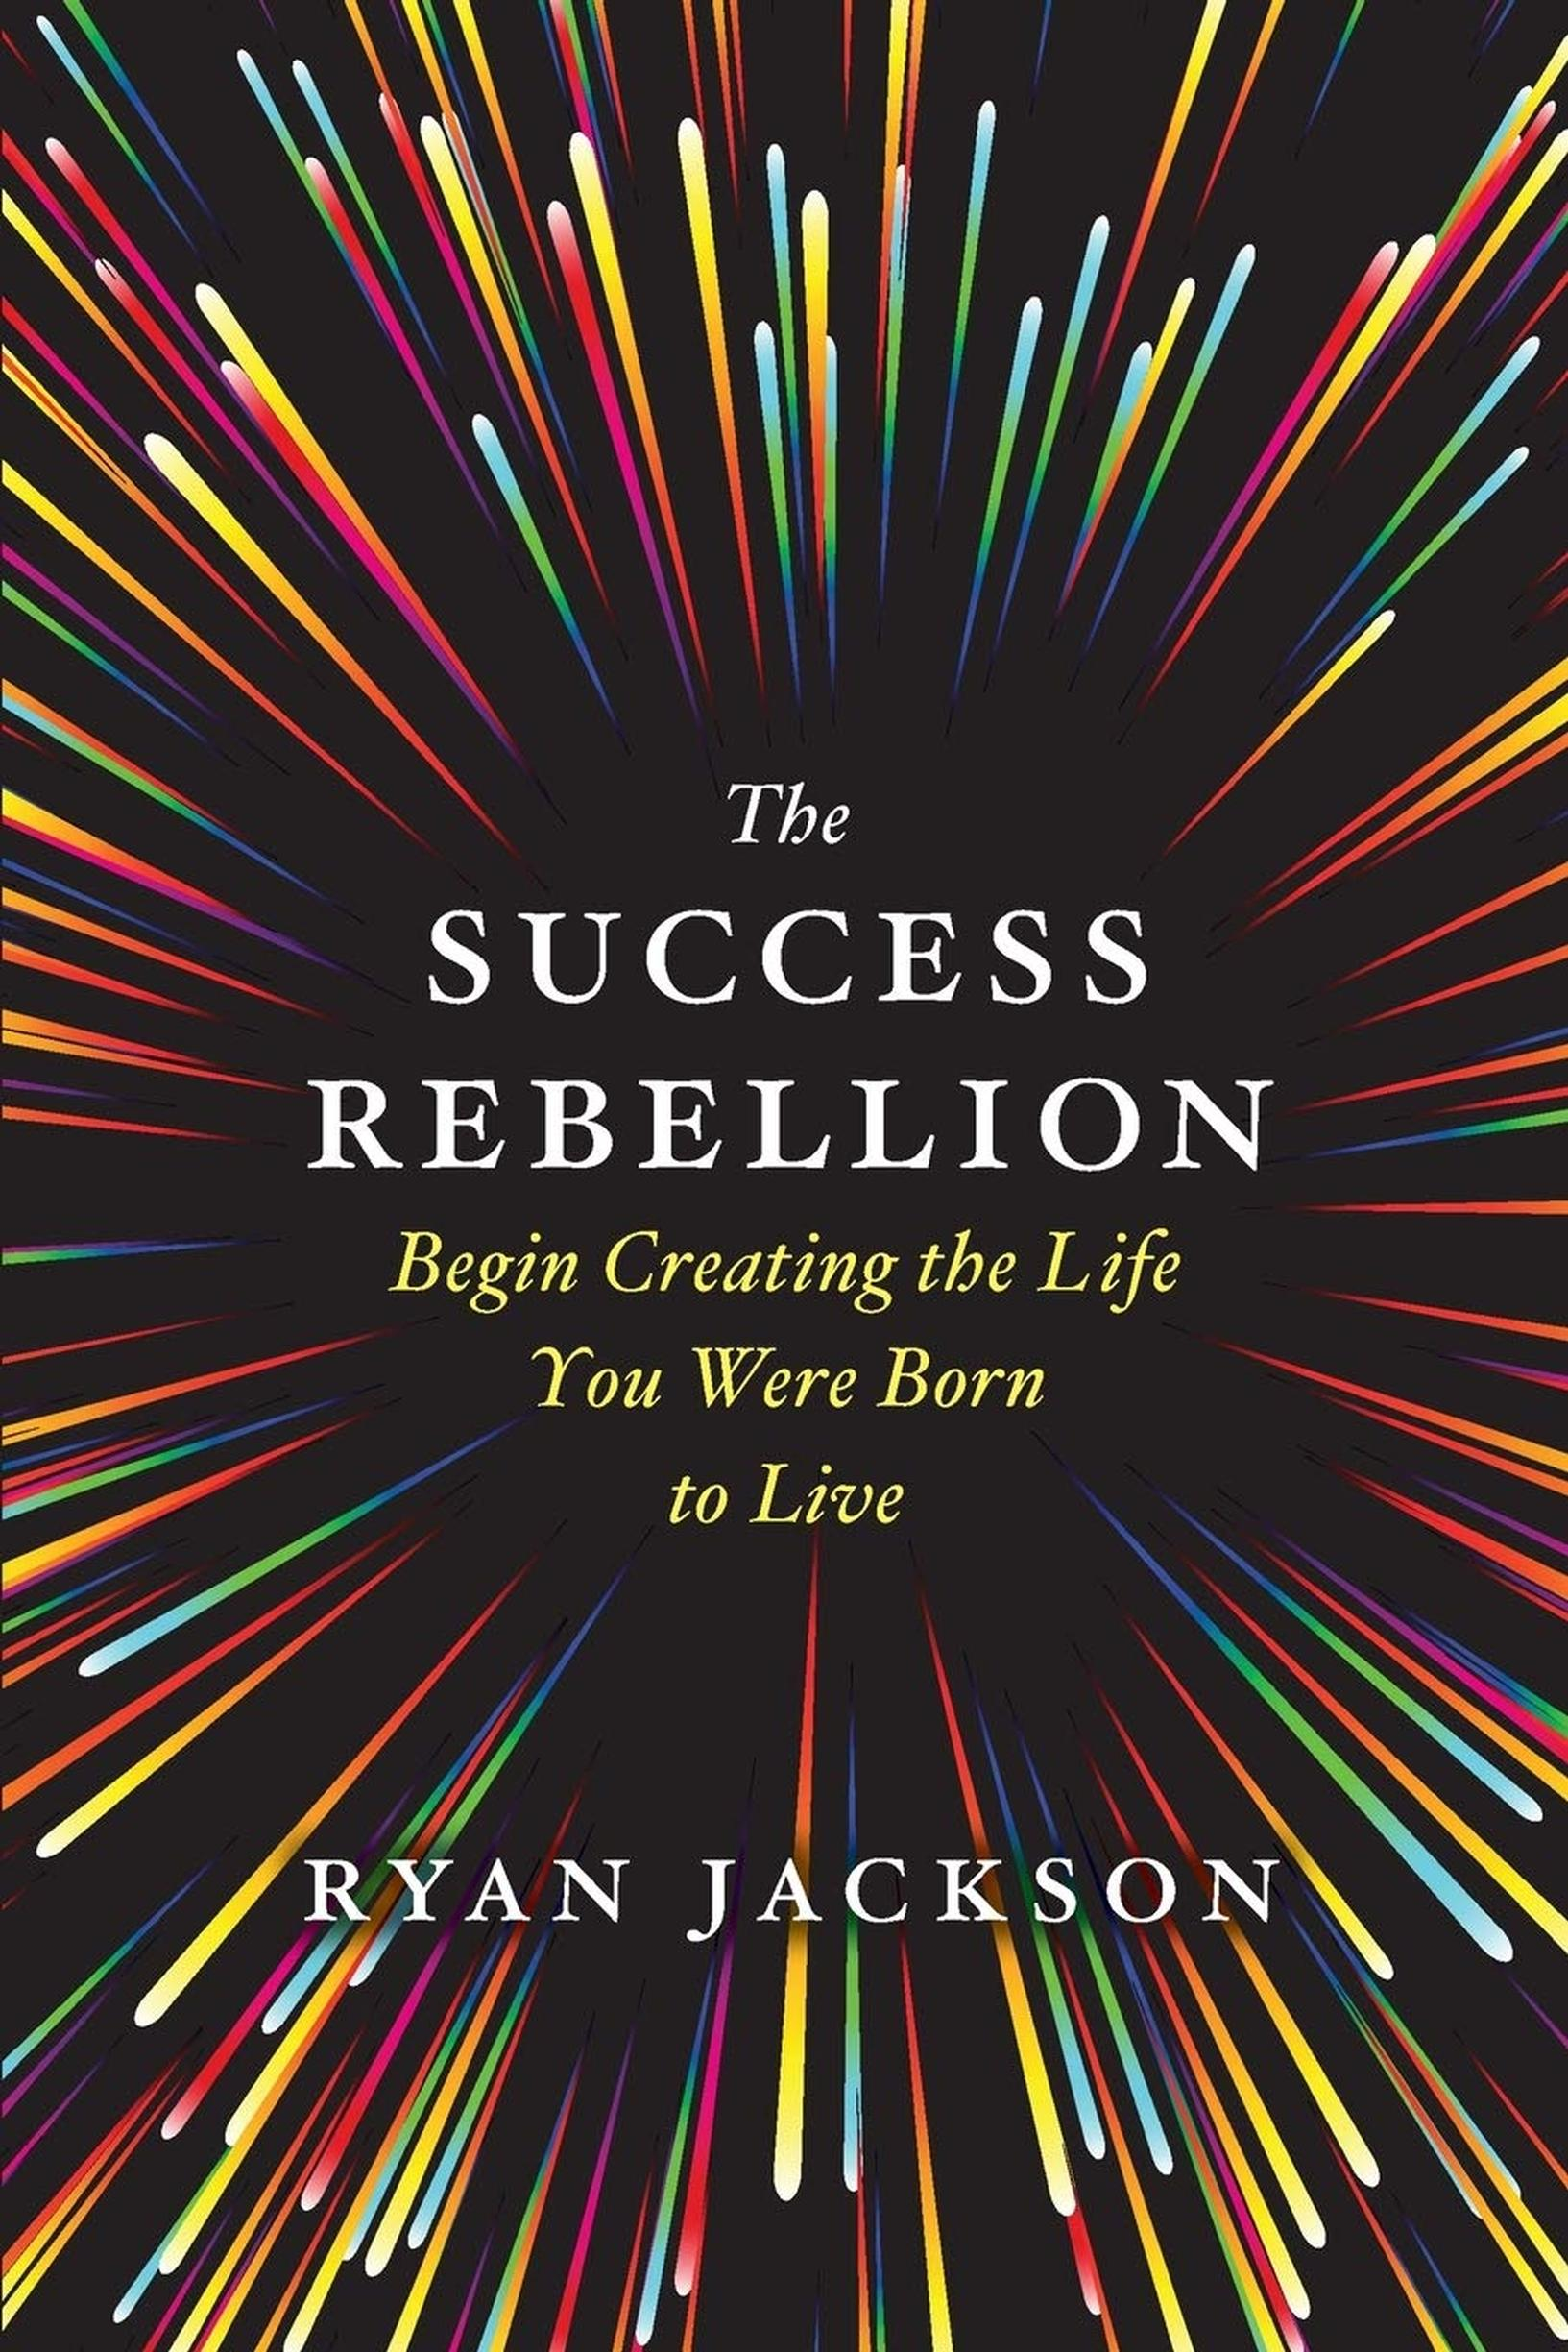 The Success Rebellion by Ryan Jackson